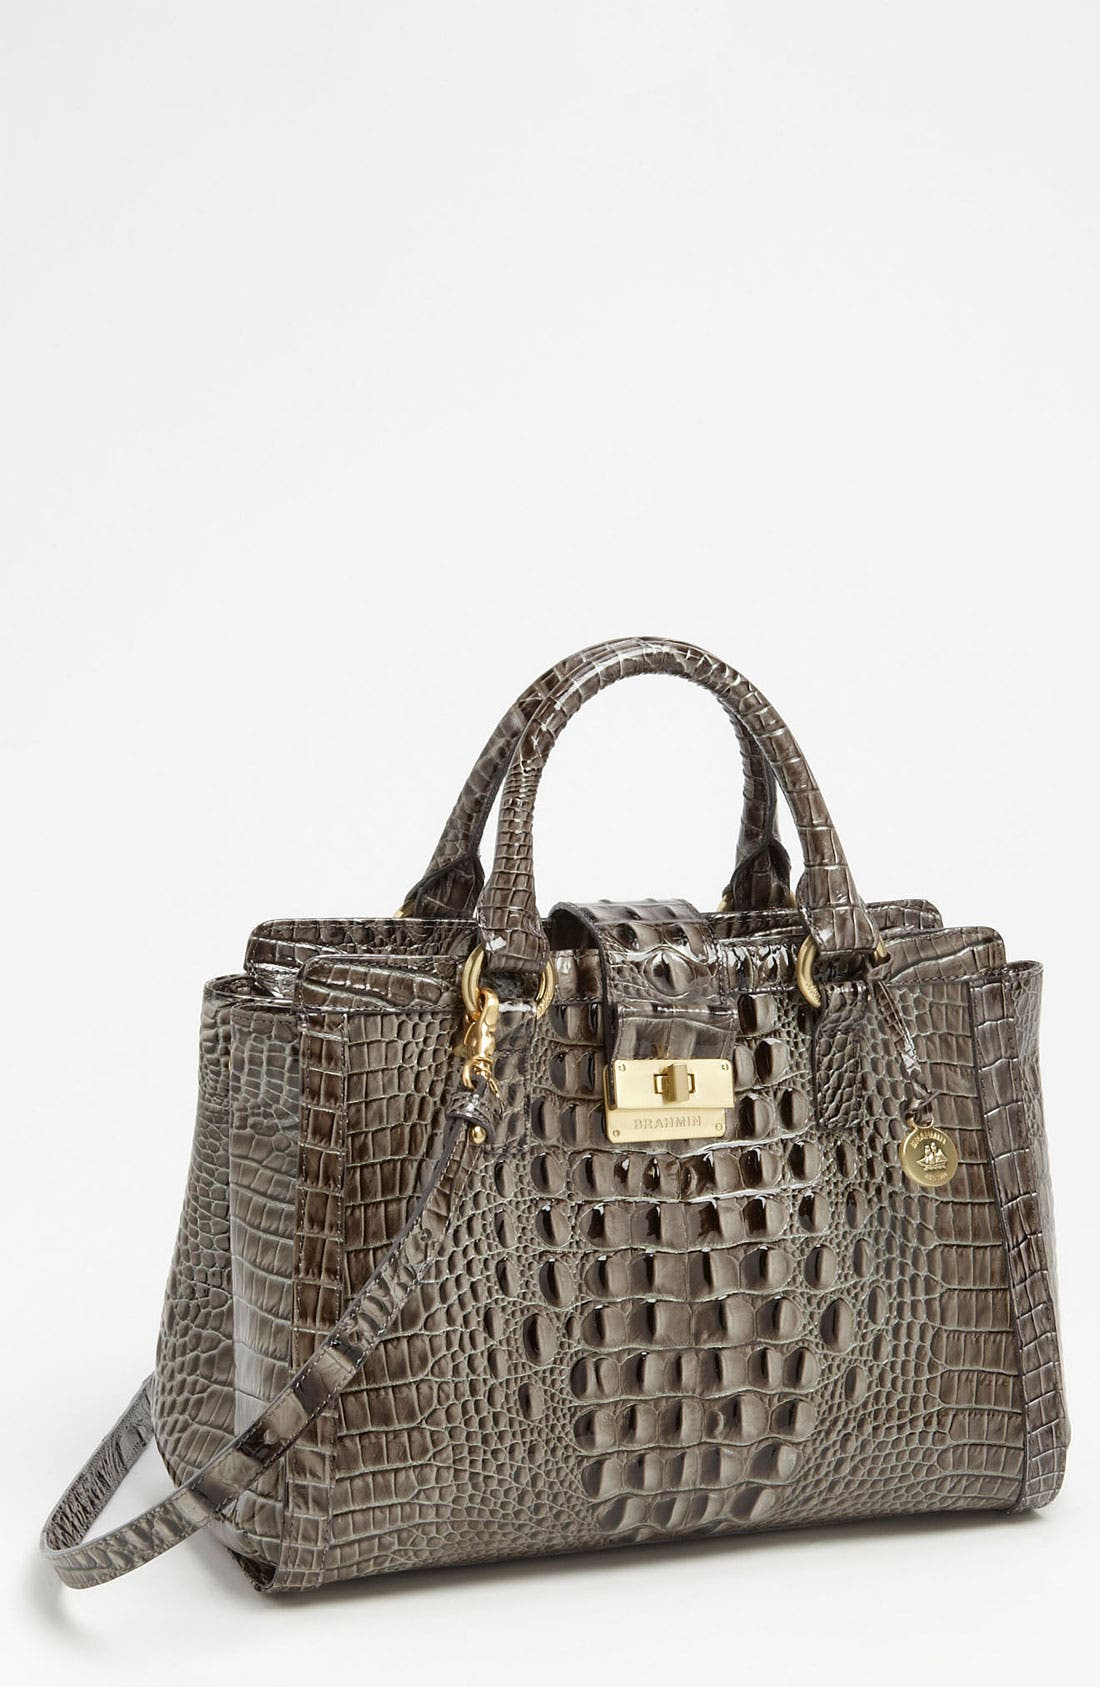 Alternate Image 1 Selected - Brahmin 'Annabelle' Glossy Leather Tote